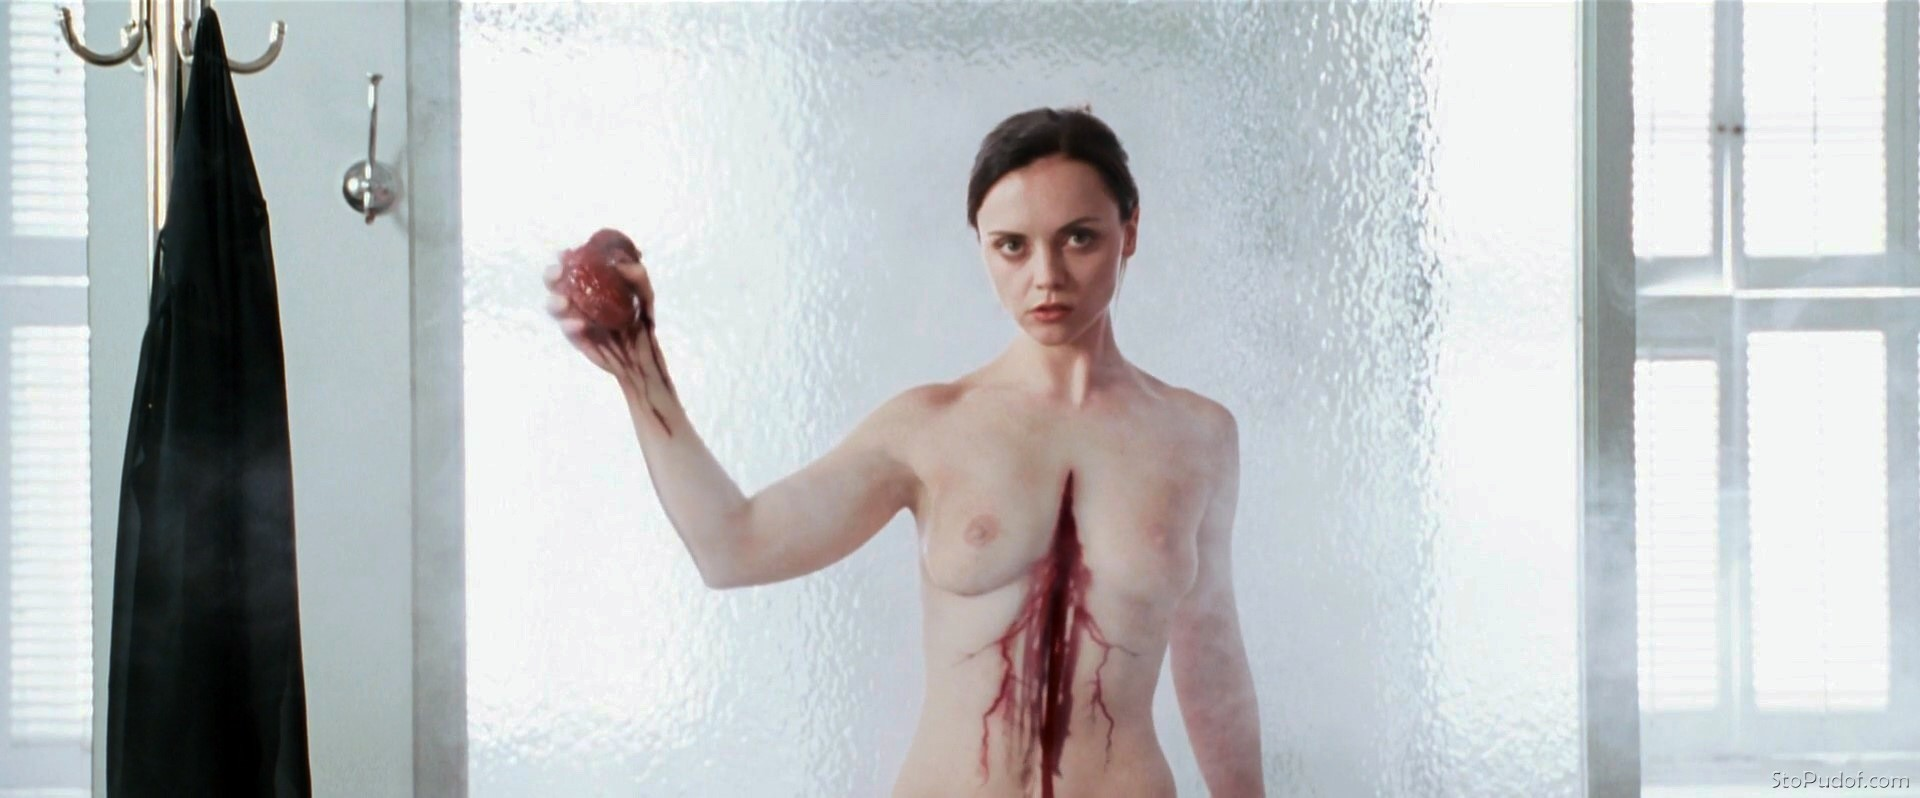 i want to see Christina Ricci naked photos - UkPhotoSafari